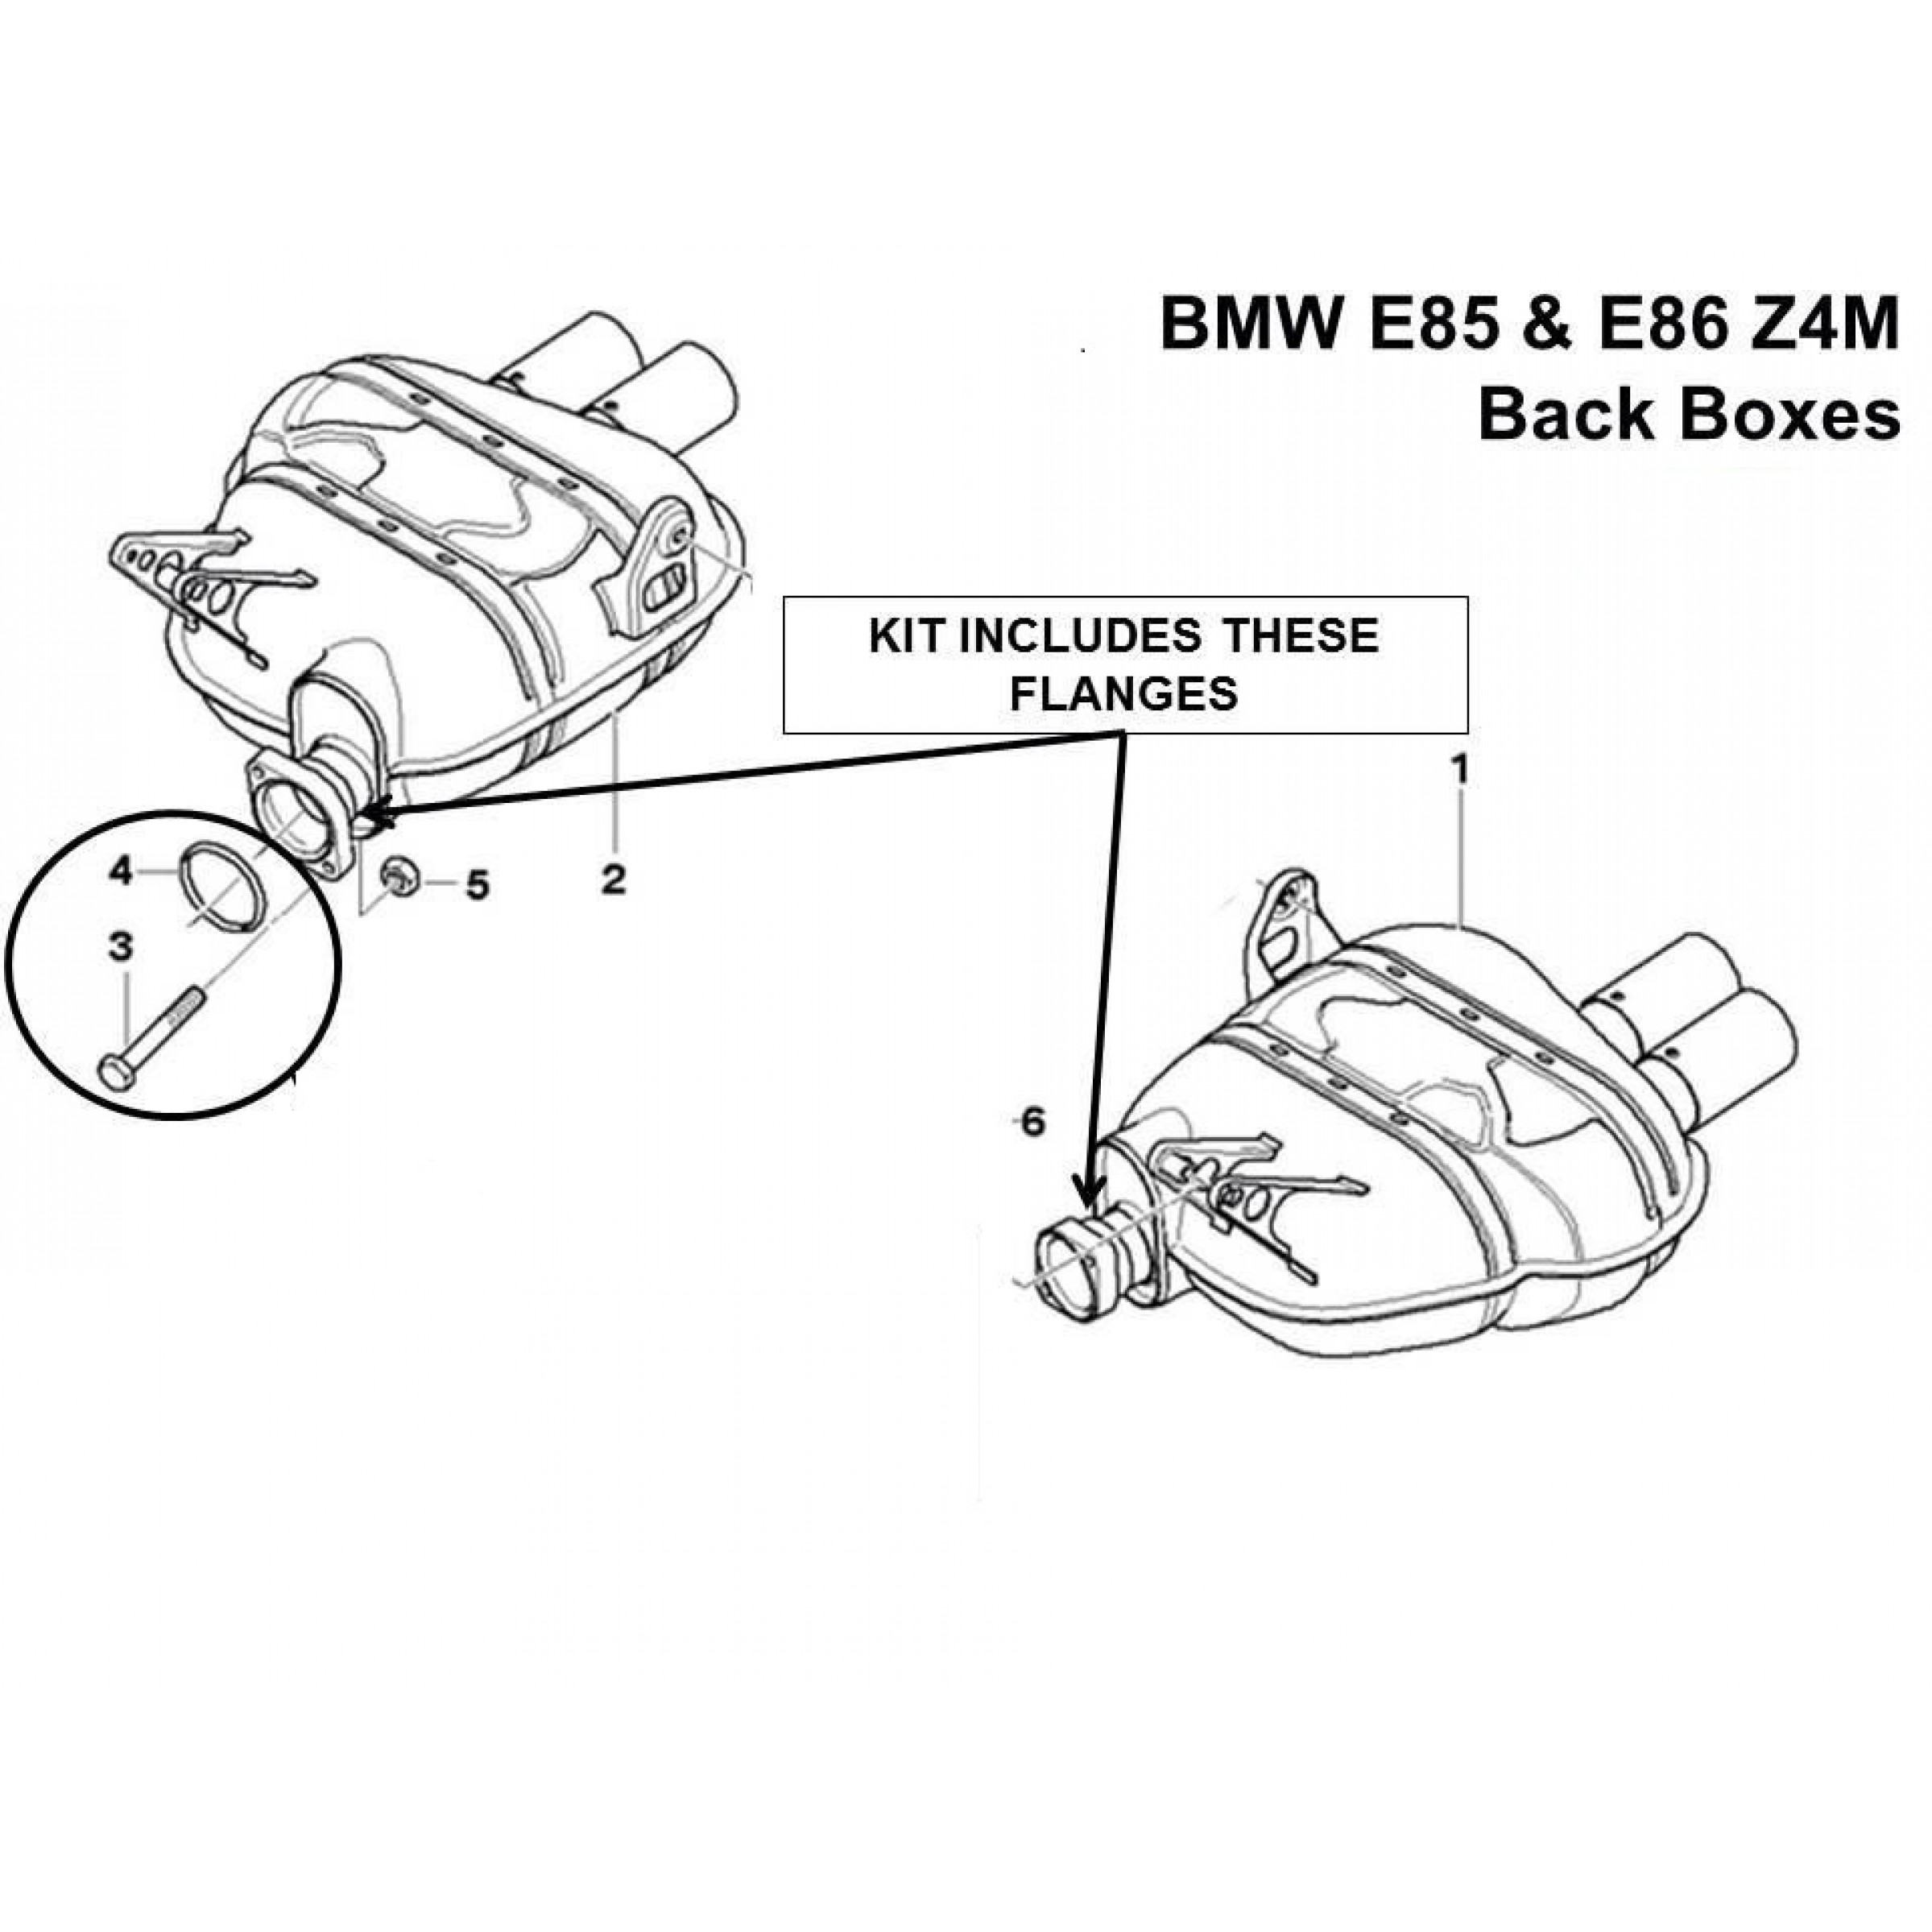 bmw m3 exhaust flange repair kit BMW Z4 Rims